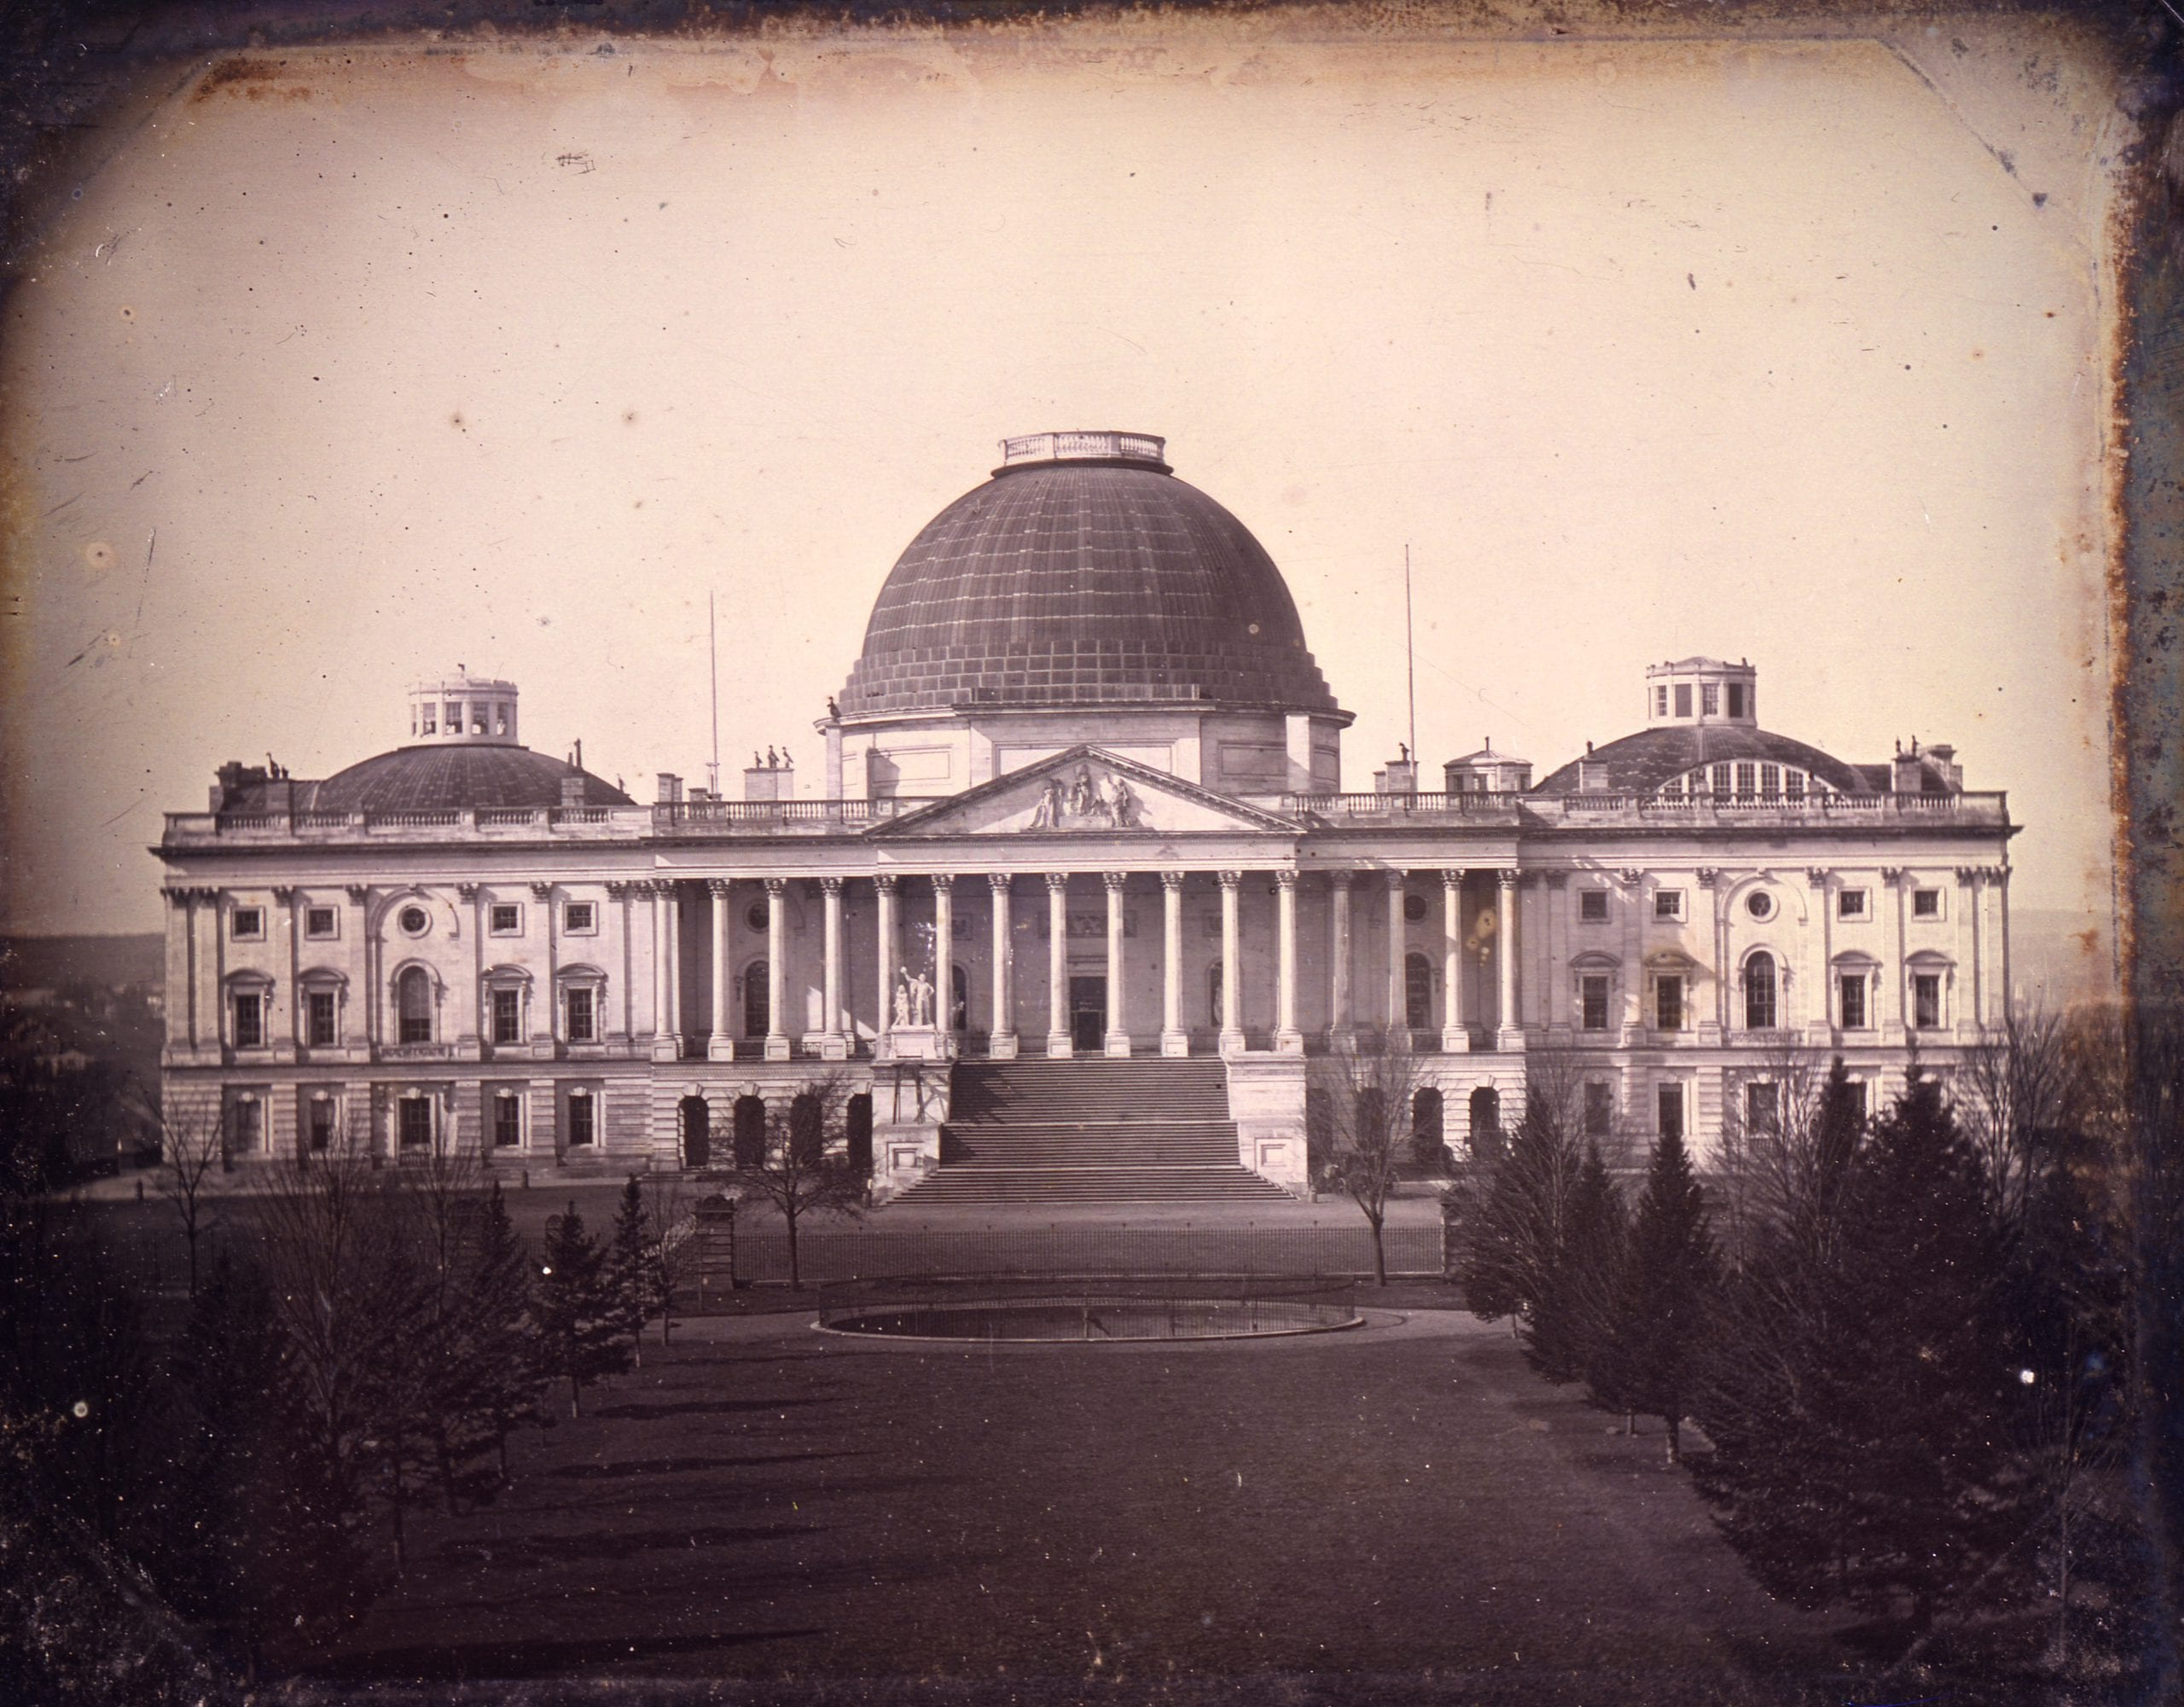 Amazing 1846 Photo of the Capitol Building